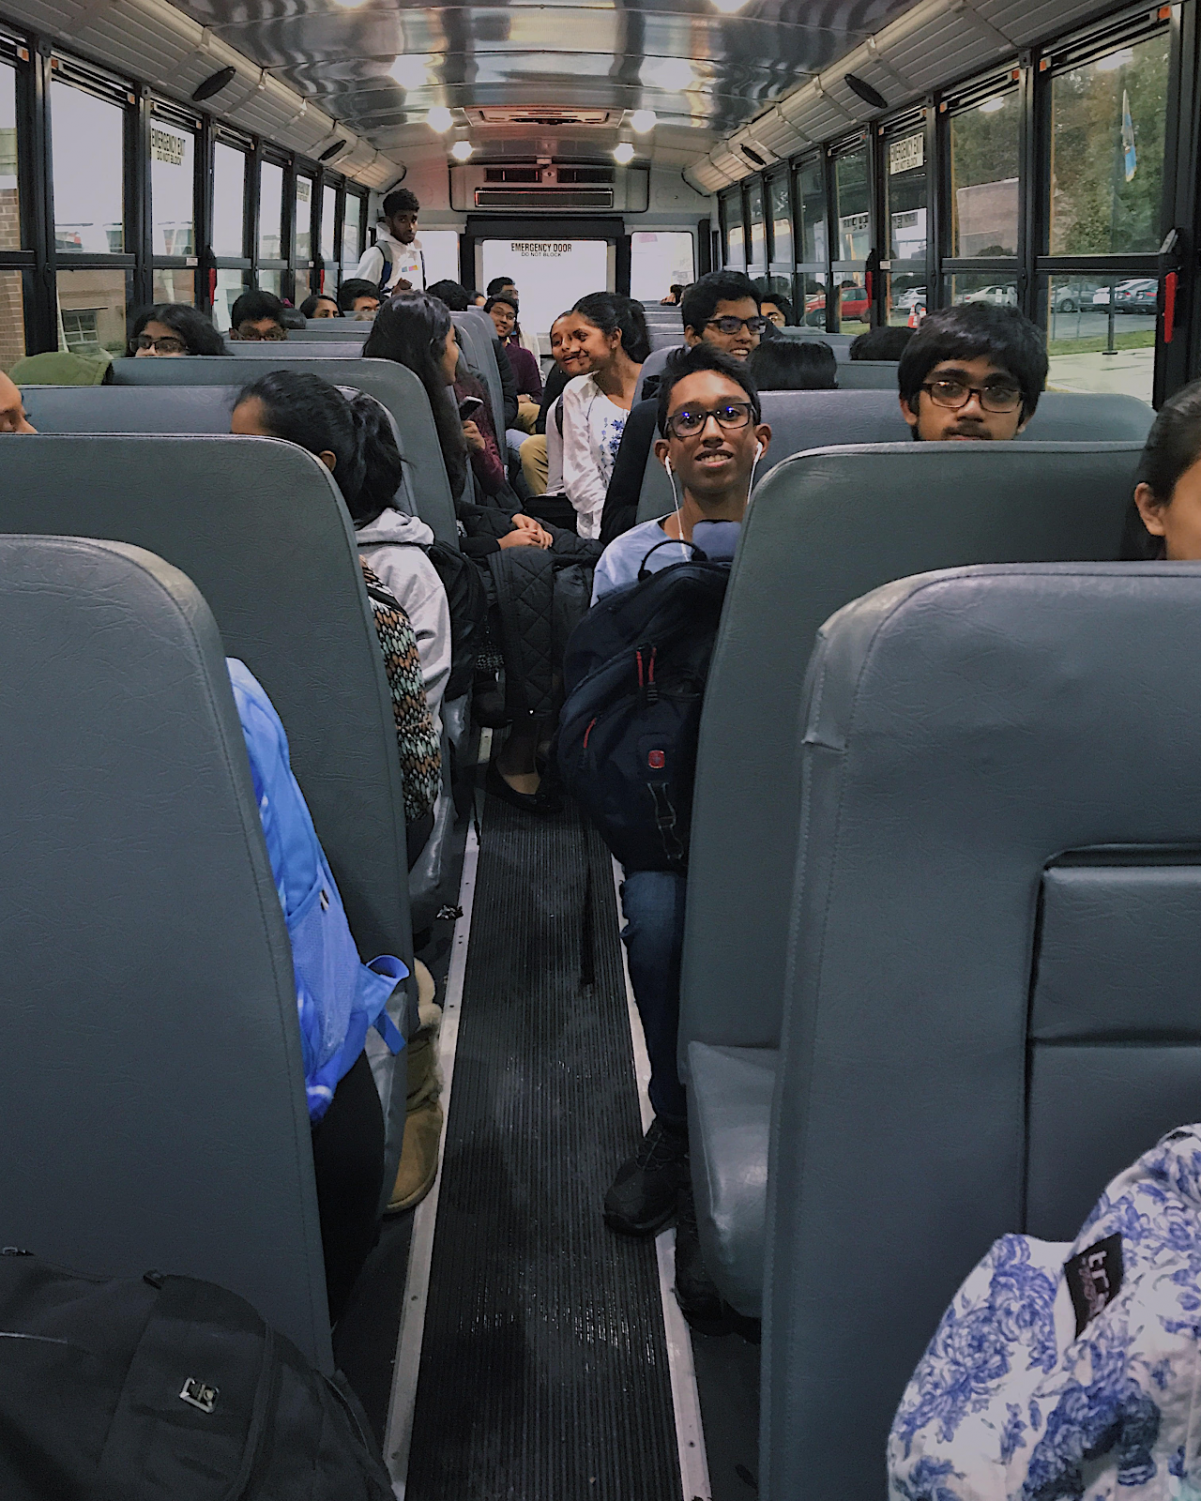 Walking onto bus 970, the hierarchical sectioning becomes apparent with freshman in the front, seniors in the back, and sophomores and junior filling up the middle